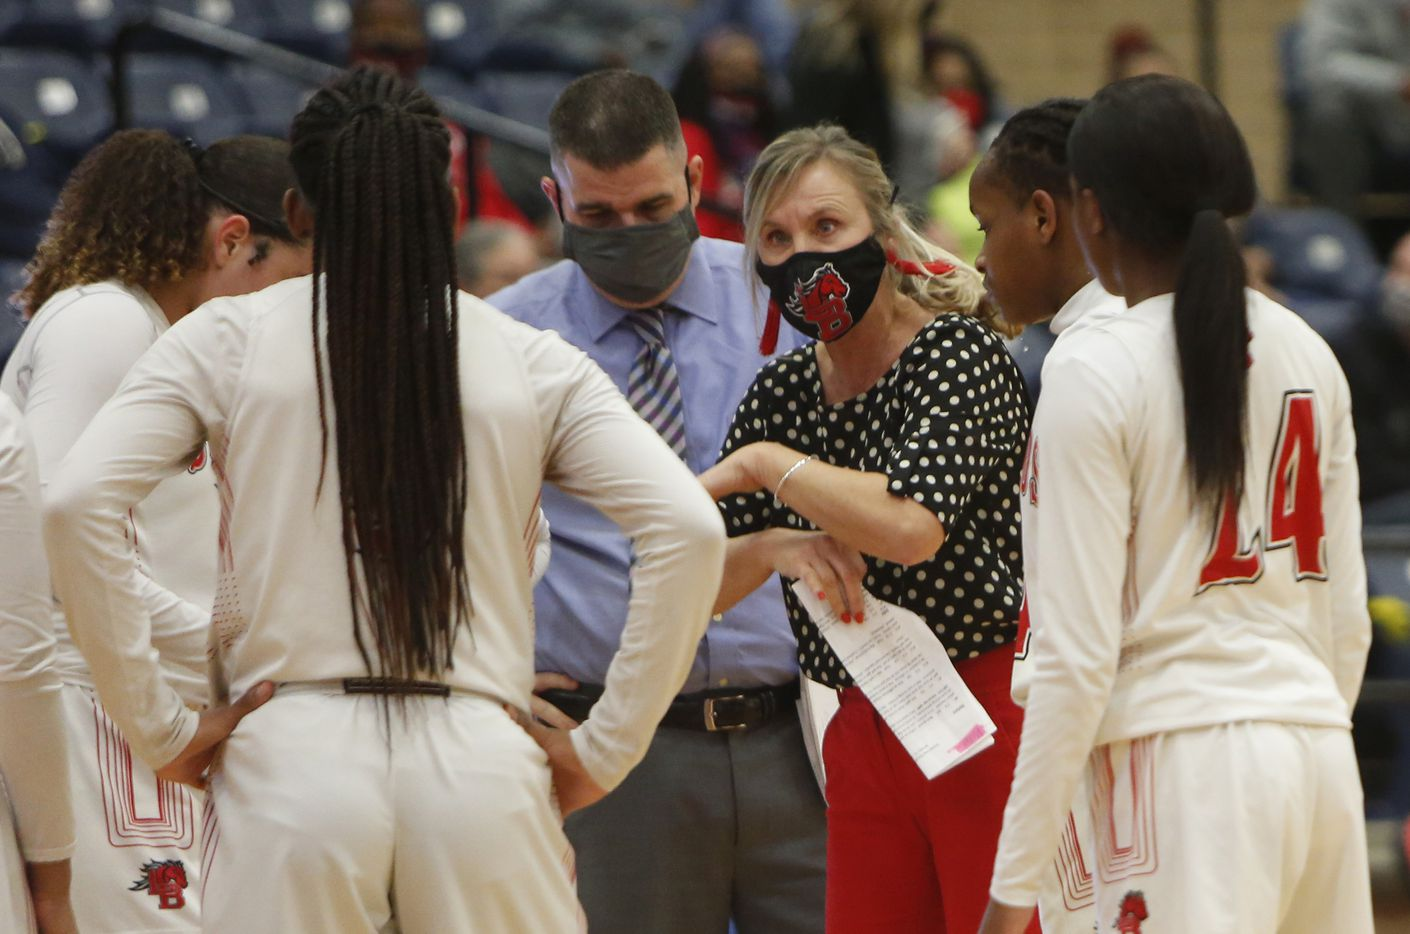 Mansfield Legacy head coach Michelle Morris speaks with her players during a timeout during first half action against Mansfield Timberview. The two teams played their District 8-5A girls basketball game at Mansfield Legacy High school on January 22 , 2021. (Steve Hamm/ Special Contributor)